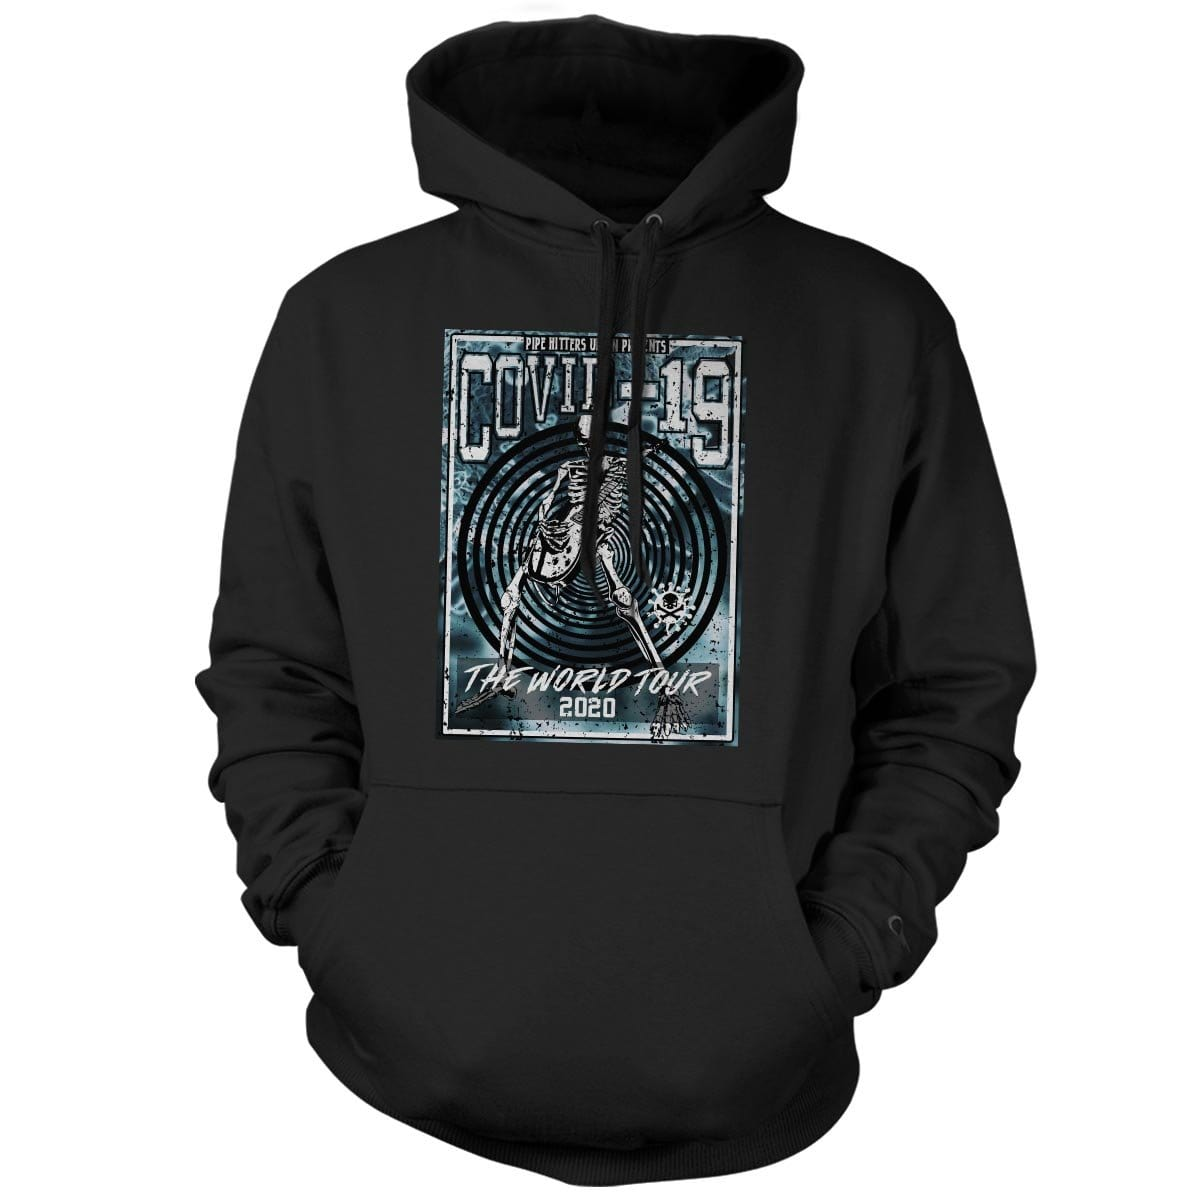 Covid-19 World Tour - Hoodie - Black/Blue - Hoodies - Pipe Hitters Union